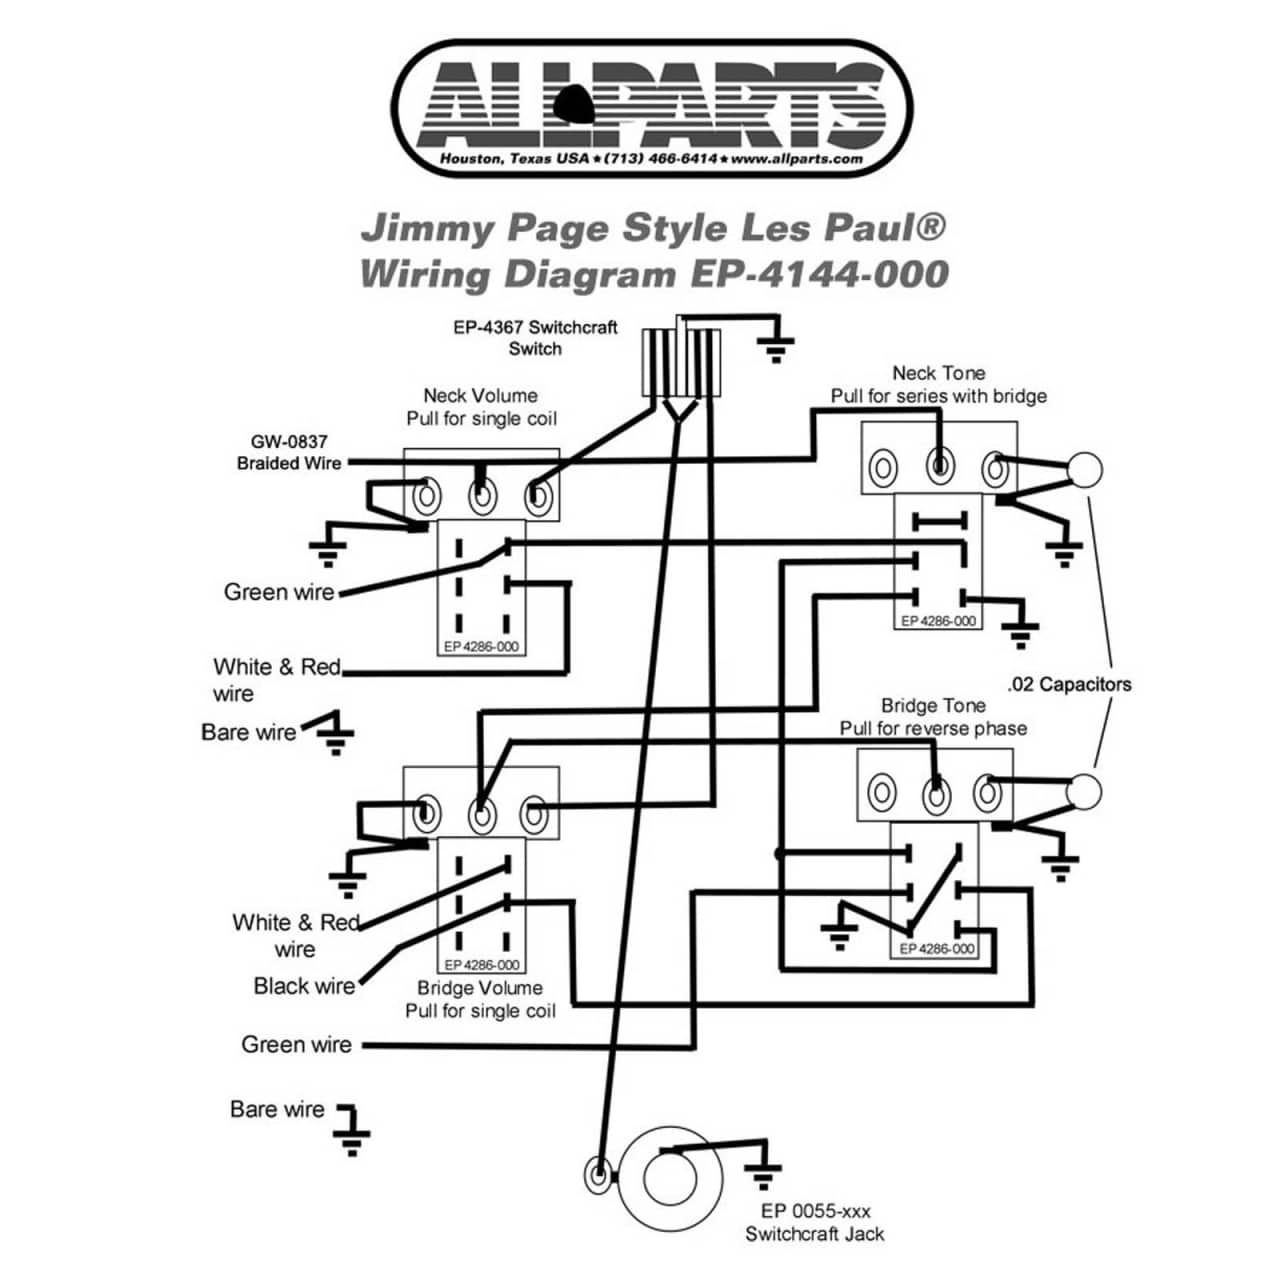 ledningsdiagram for epiphone gibson sg auto electrical wiring diagram Motorcycle Turn Signal Wiring Diagram gibson les paul drawing at getdrawings